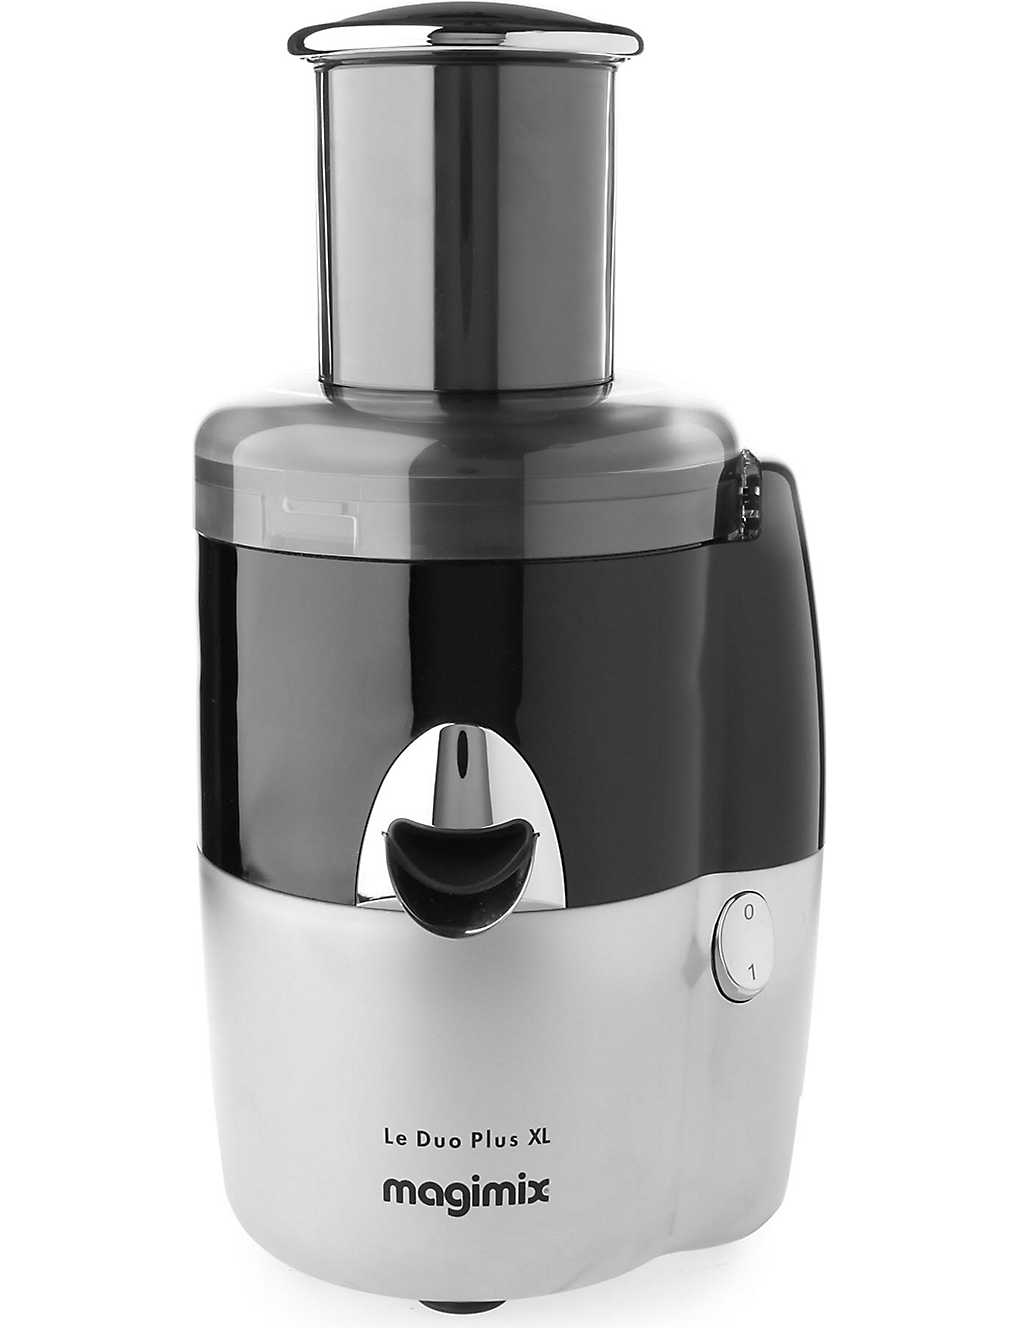 Magimix Le Duo XL in White Juicers.co.uk